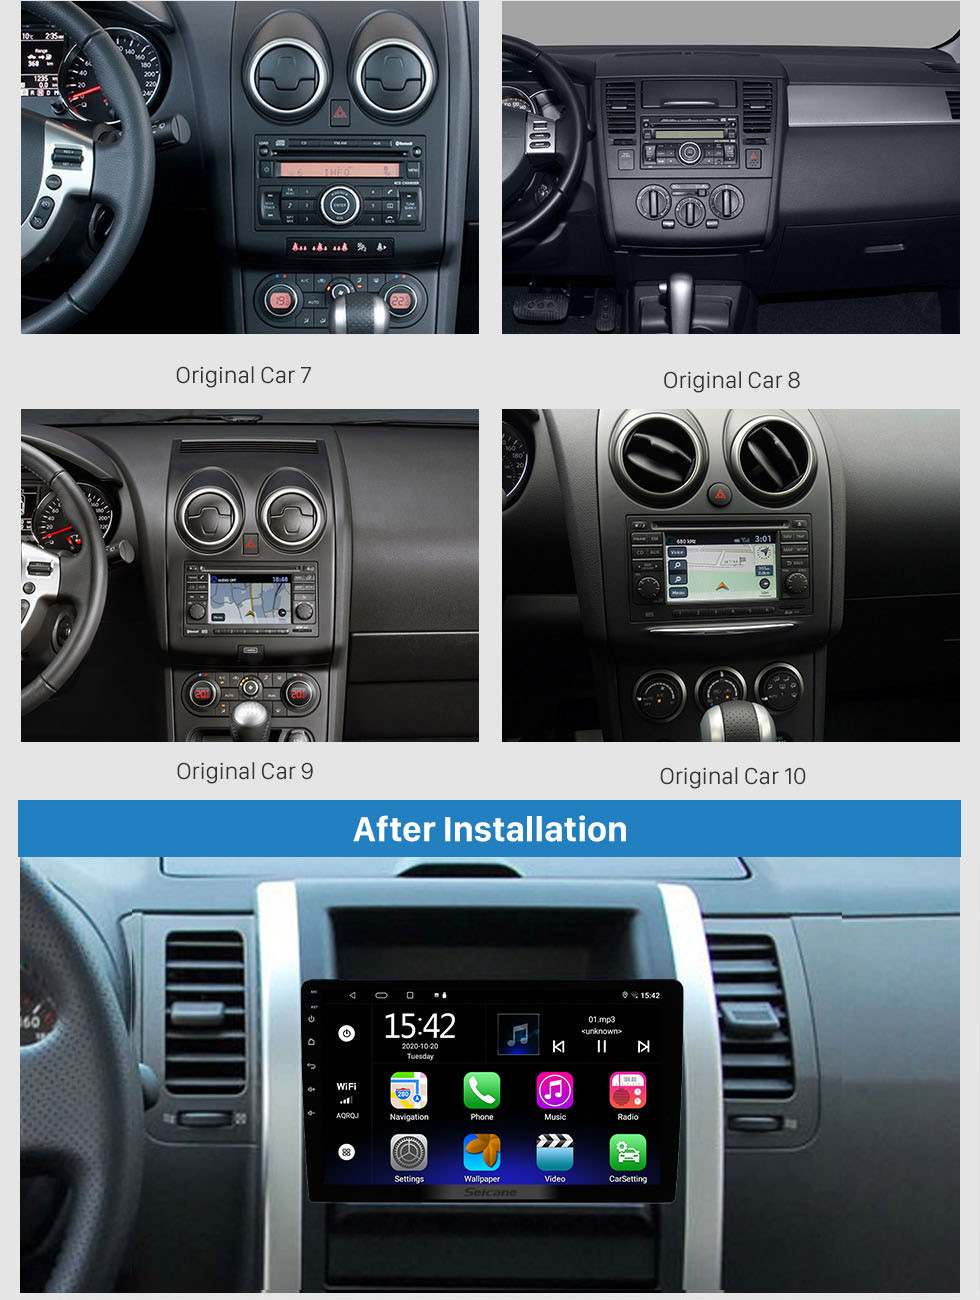 Seicane 10.1 inch HD 1024*600 HD touchscreen Android 10.0 Universal GPS Navigation Bluetooth Car Audio System Support Mirror Link 3G WiFi Backup Camera DVR DAB+ Steering Wheel Control